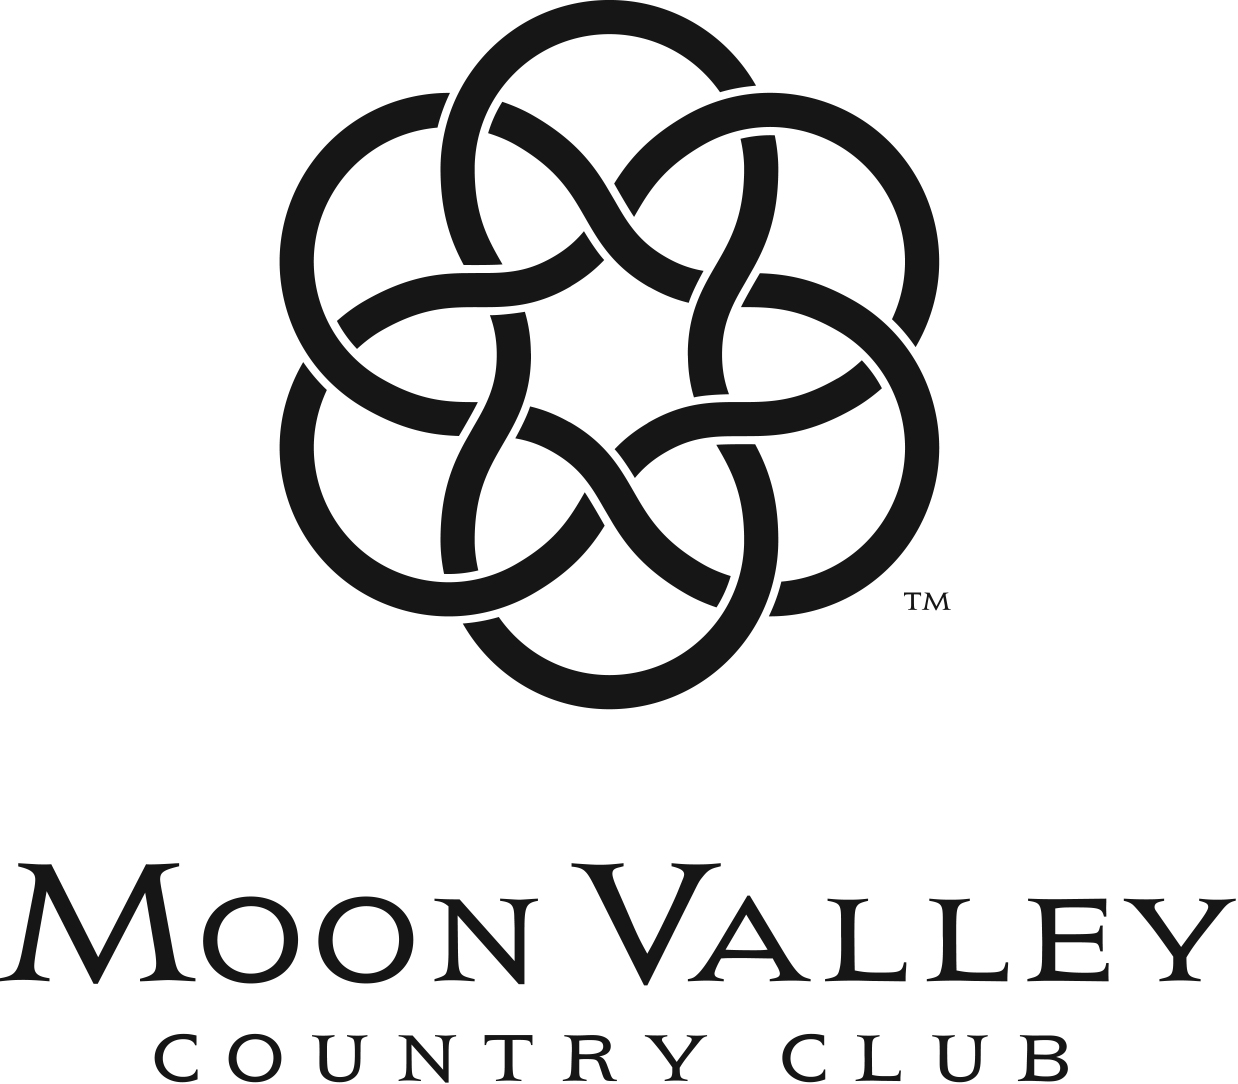 Moon Valley Country Club